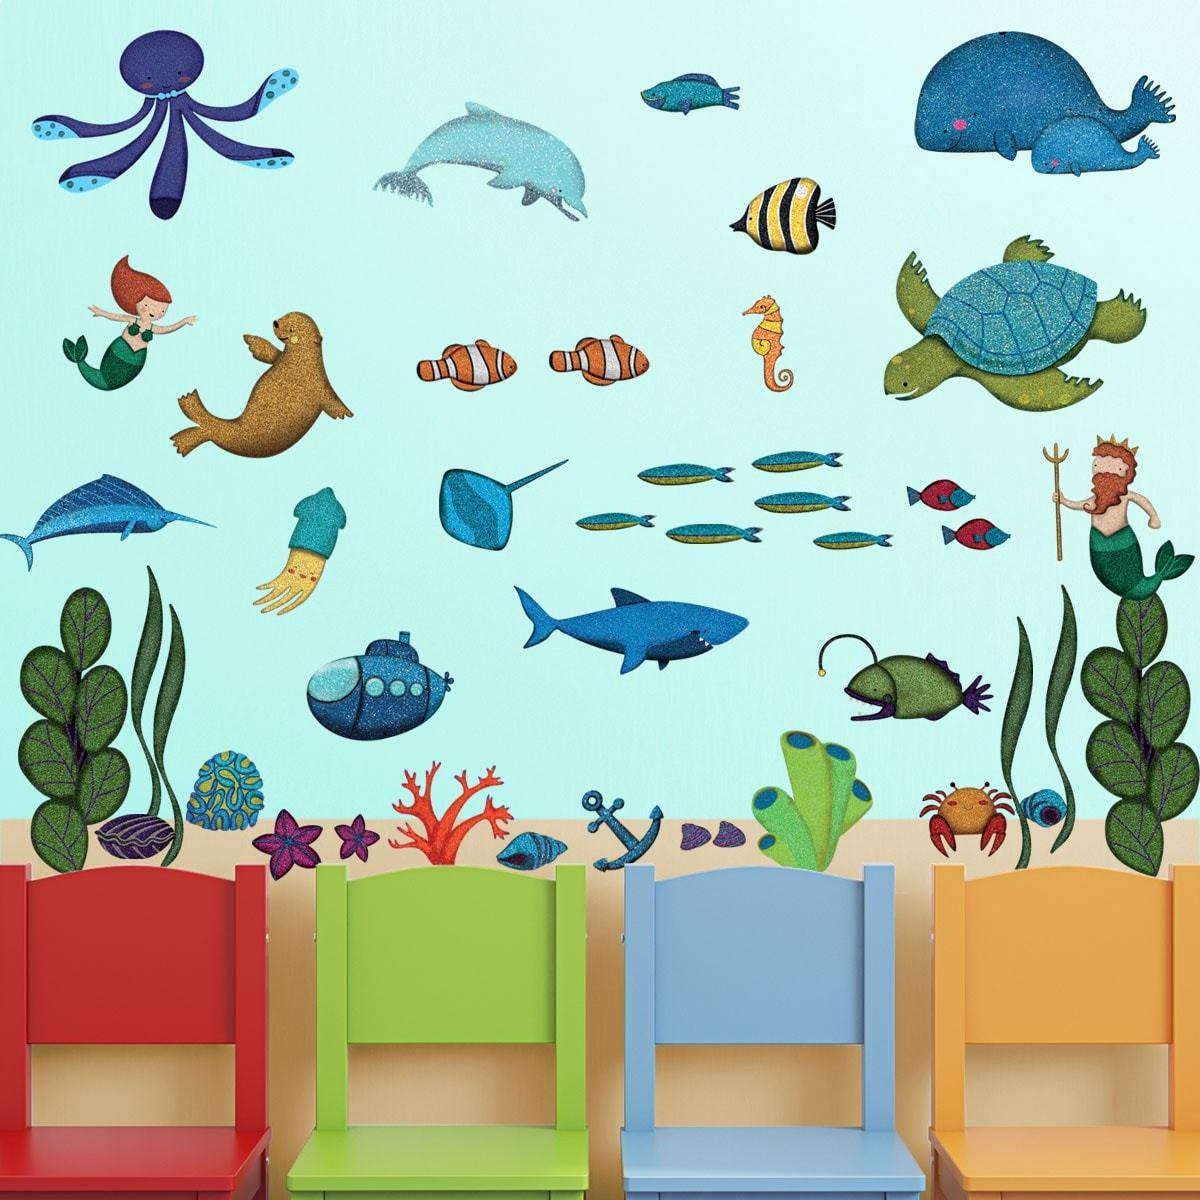 Ocean wall decals peel stick under the sea wall sticker kit ocean wall decor peel stick under the sea wall kit amipublicfo Gallery